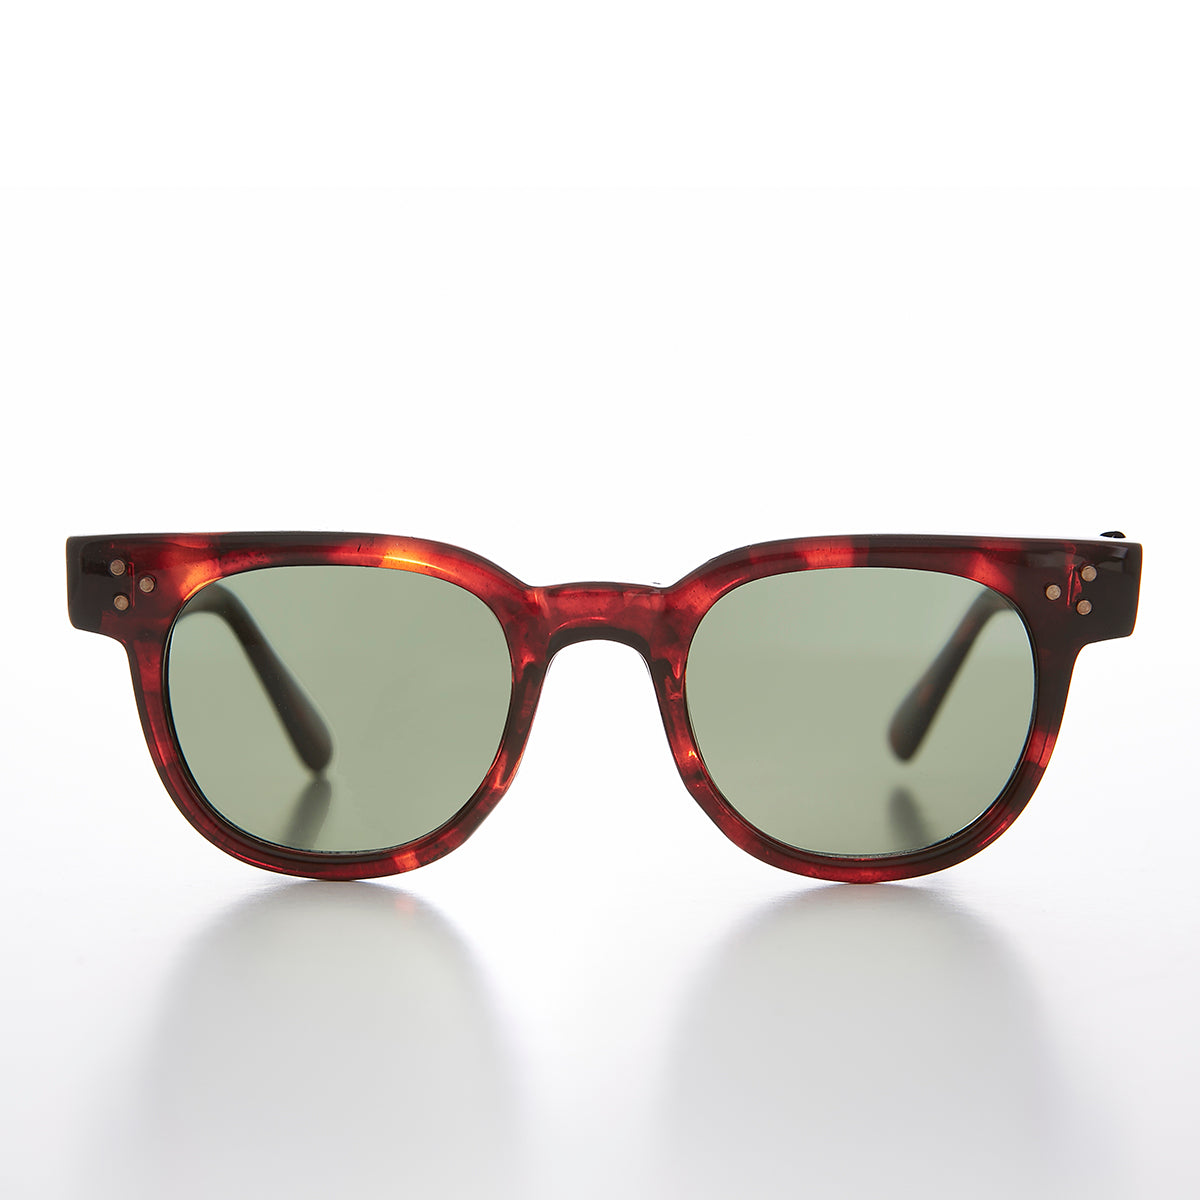 Classic 50s Retro Vintage Sunglass with Stud Accent